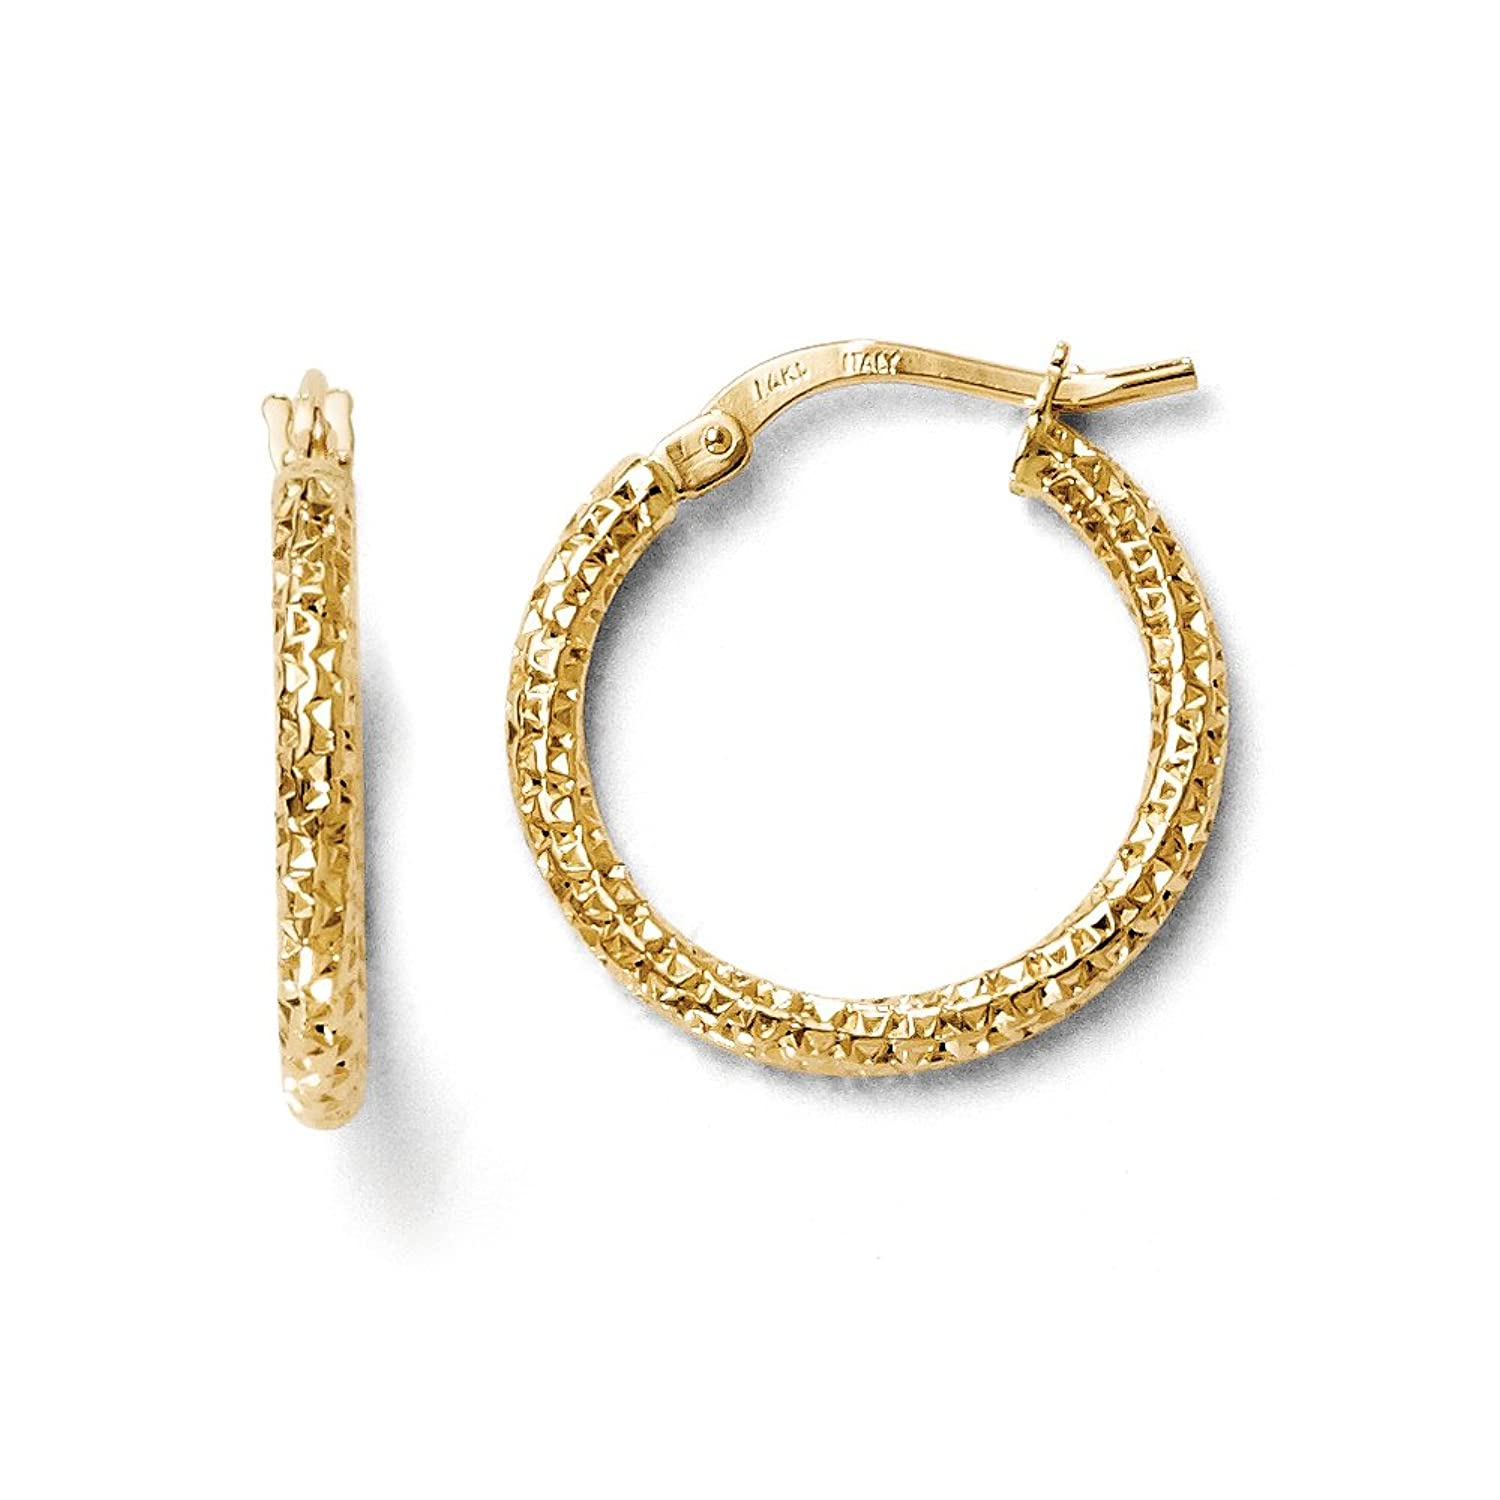 Amazon 2mm Textured Round Hoop Earrings in 14k Yellow Gold